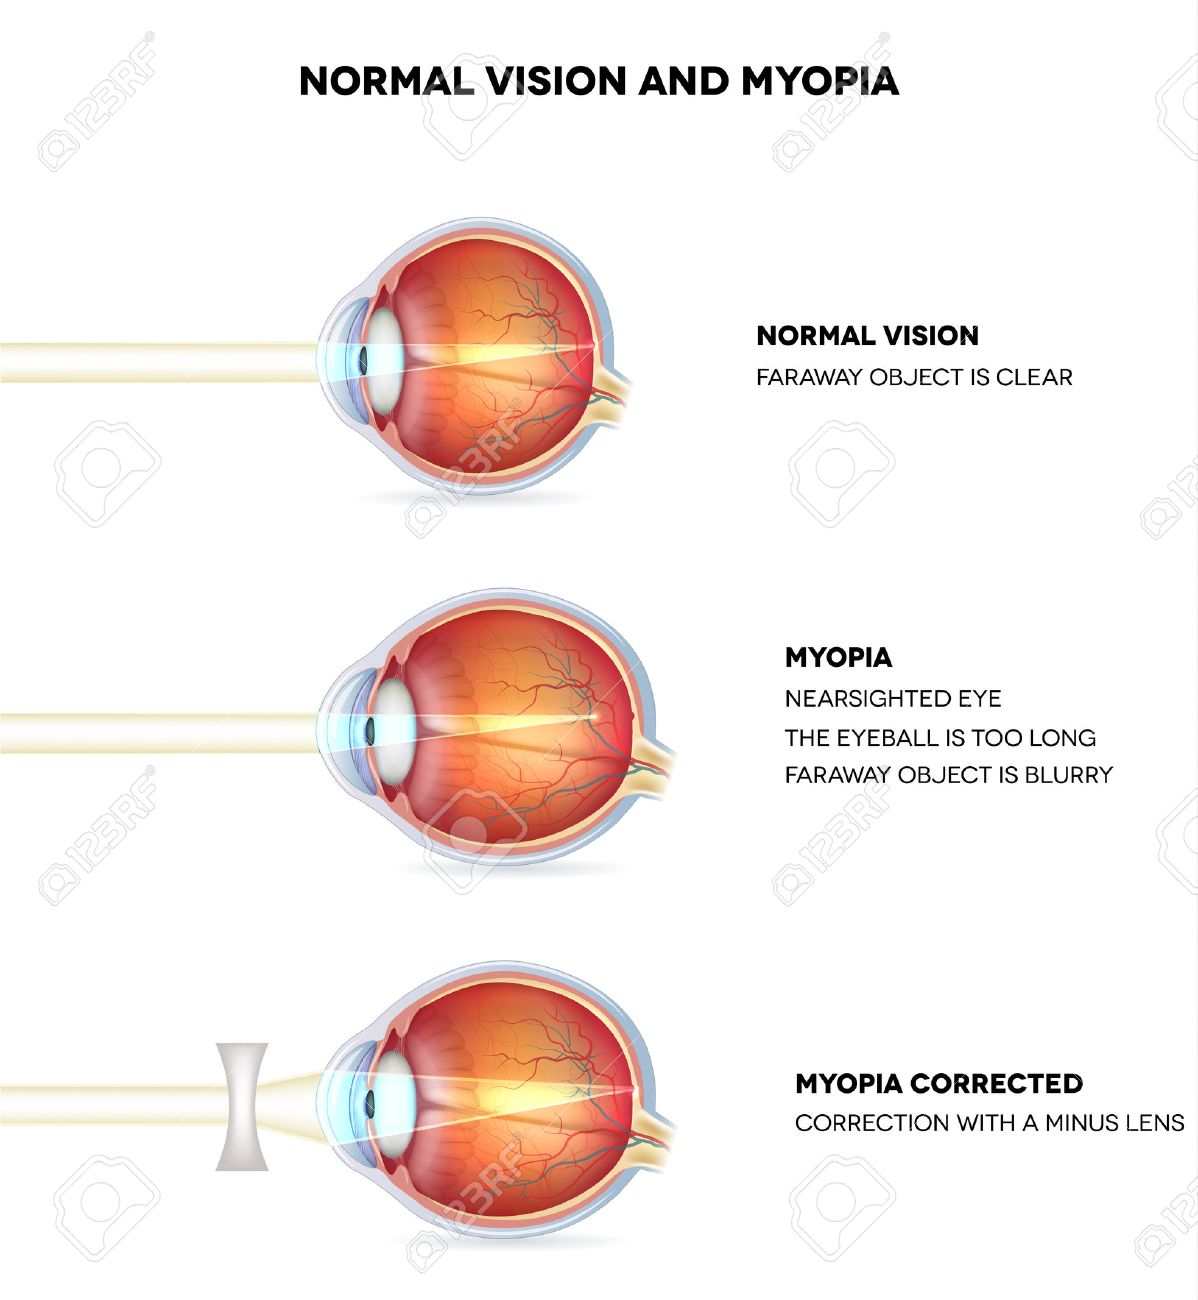 hight resolution of myopia and normal vision myopia is being shortsighted myopia corrected with minus lens